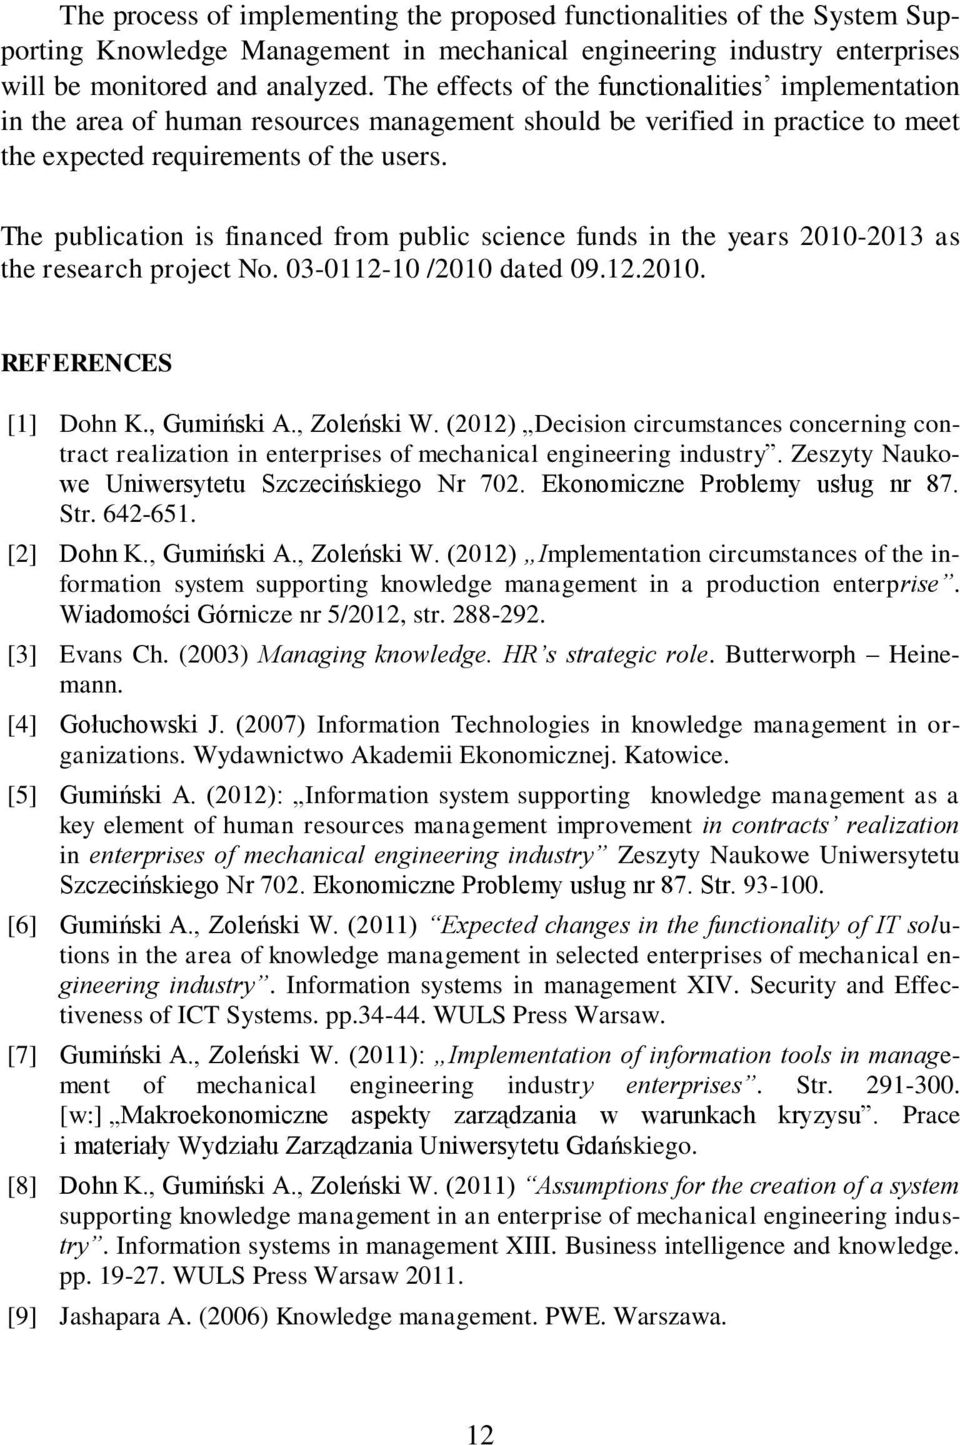 The publication is financed from public science funds in the years 2010-2013 as the research project No. 03-0112-10 /2010 dated 09.12.2010. REFERENCES [1] Dohn K., Gumiński A., Zoleński W.